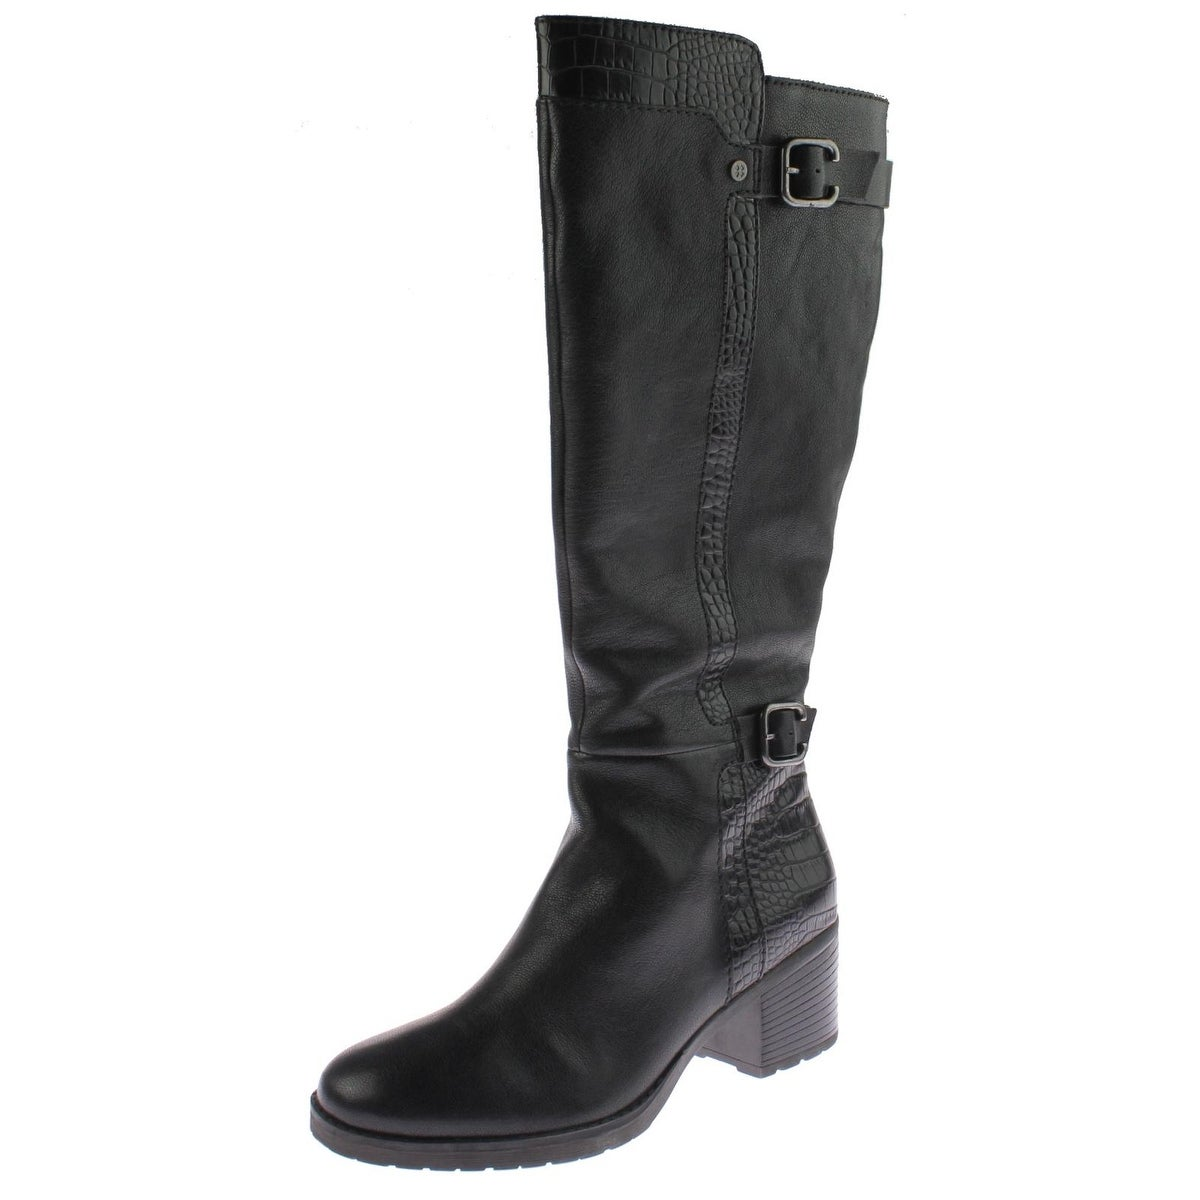 ba19eb6568e Buy Knee-High Boots Naturalizer Women s Boots Online at Overstock ...